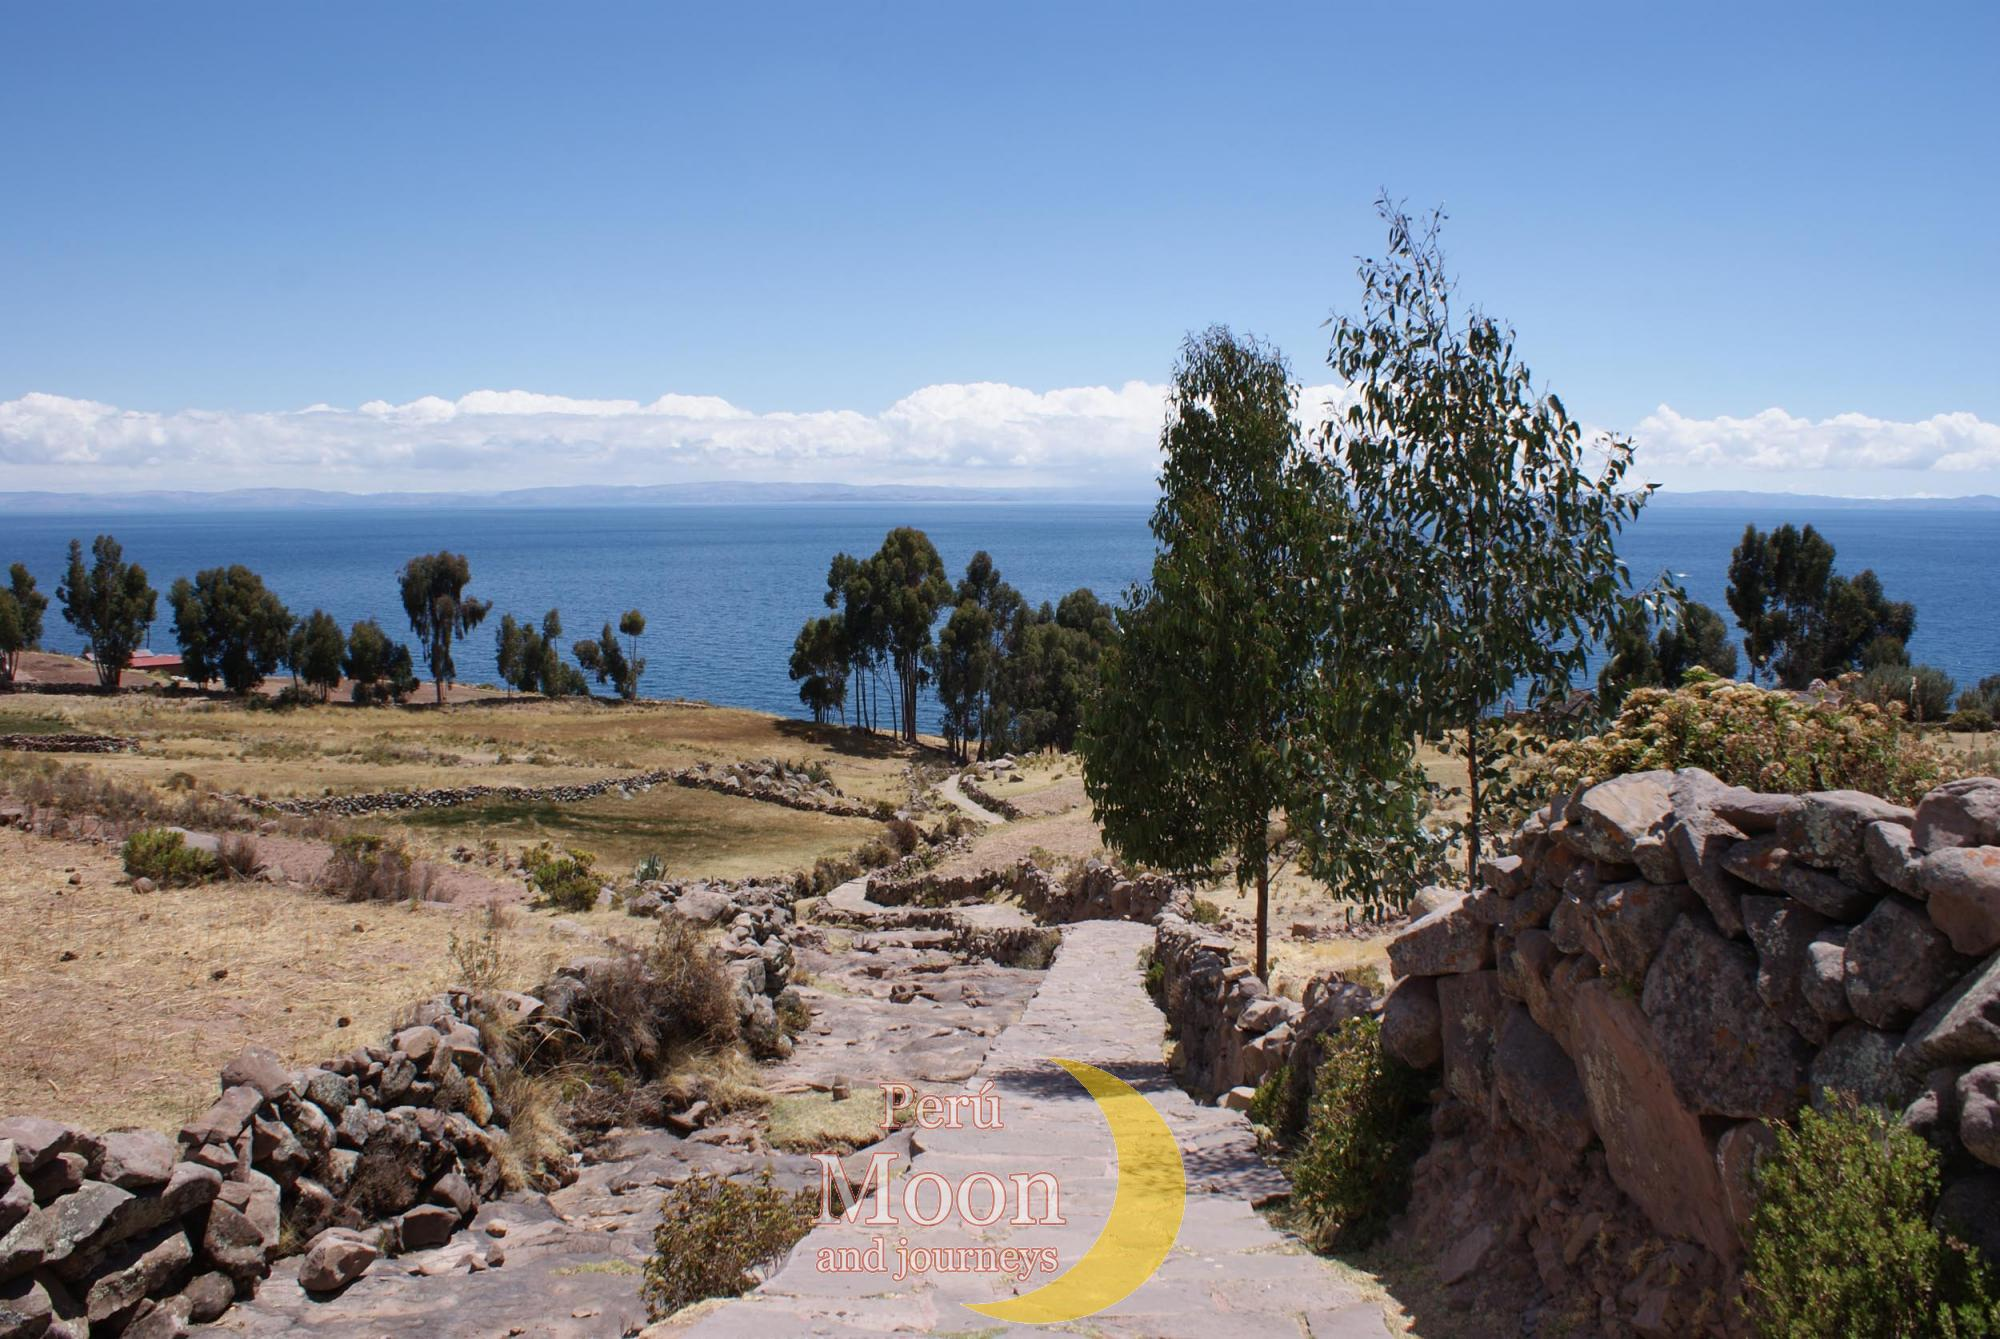 Landscape of the island of Taquile